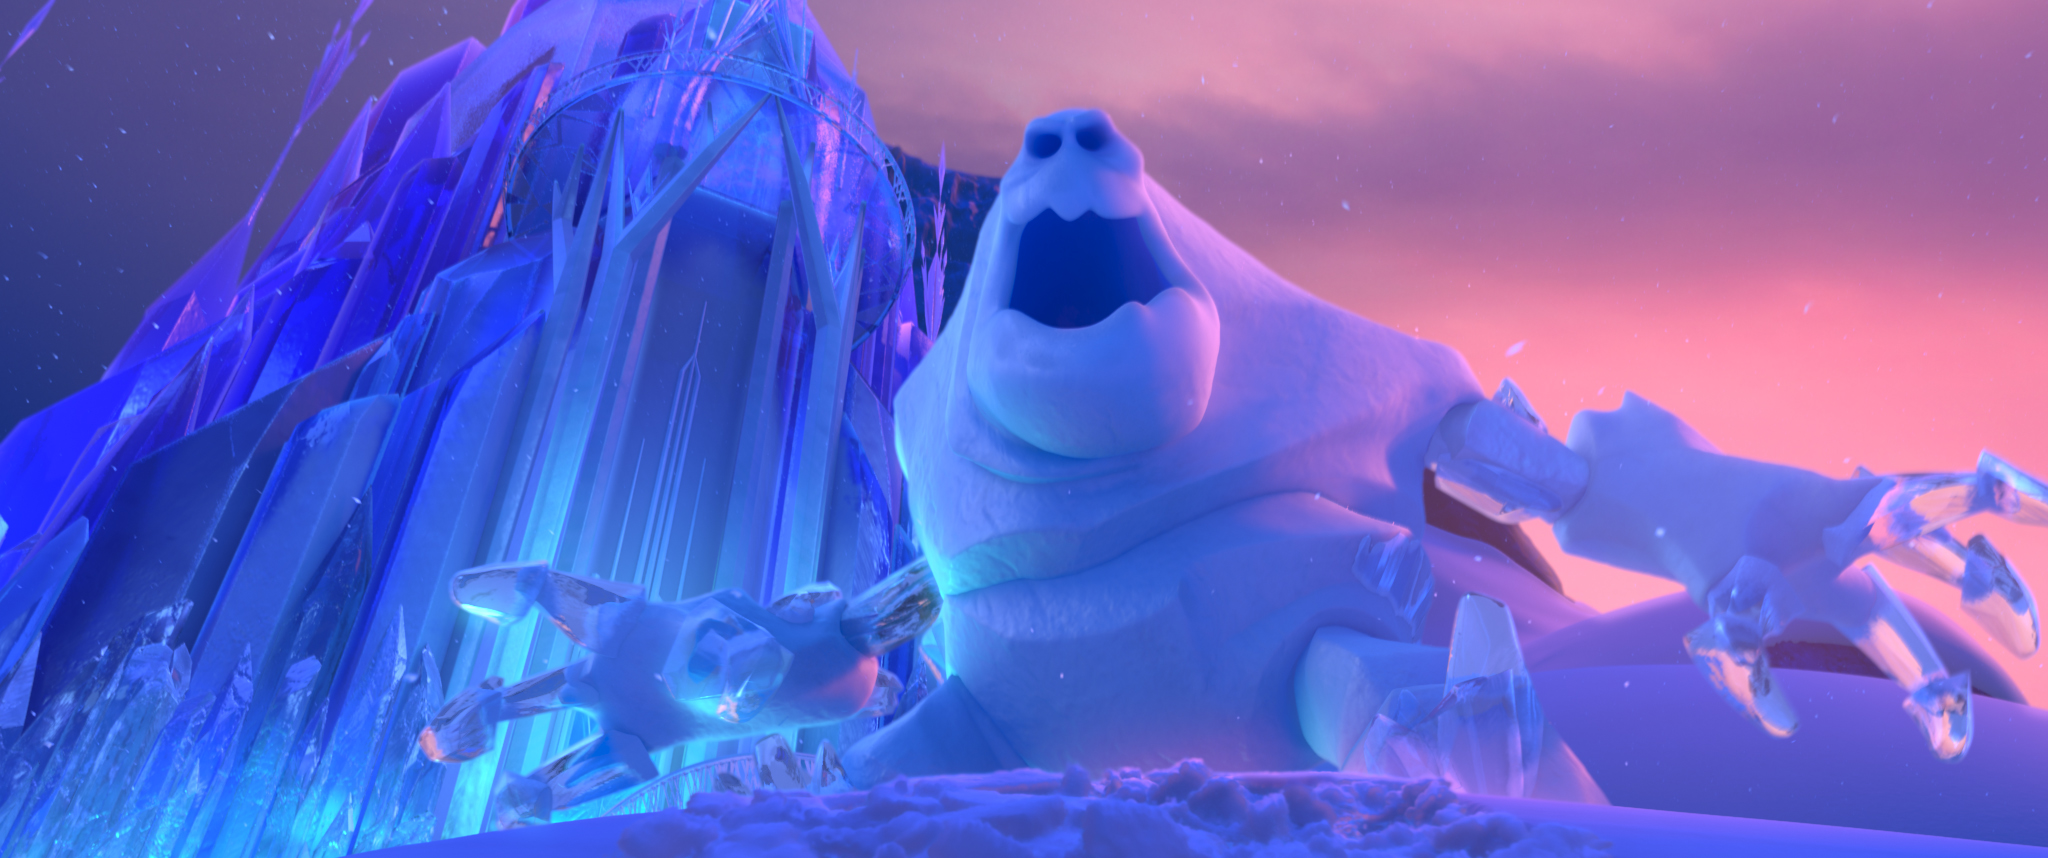 Marshmallow in Disney's Animated Adventure, Frozen